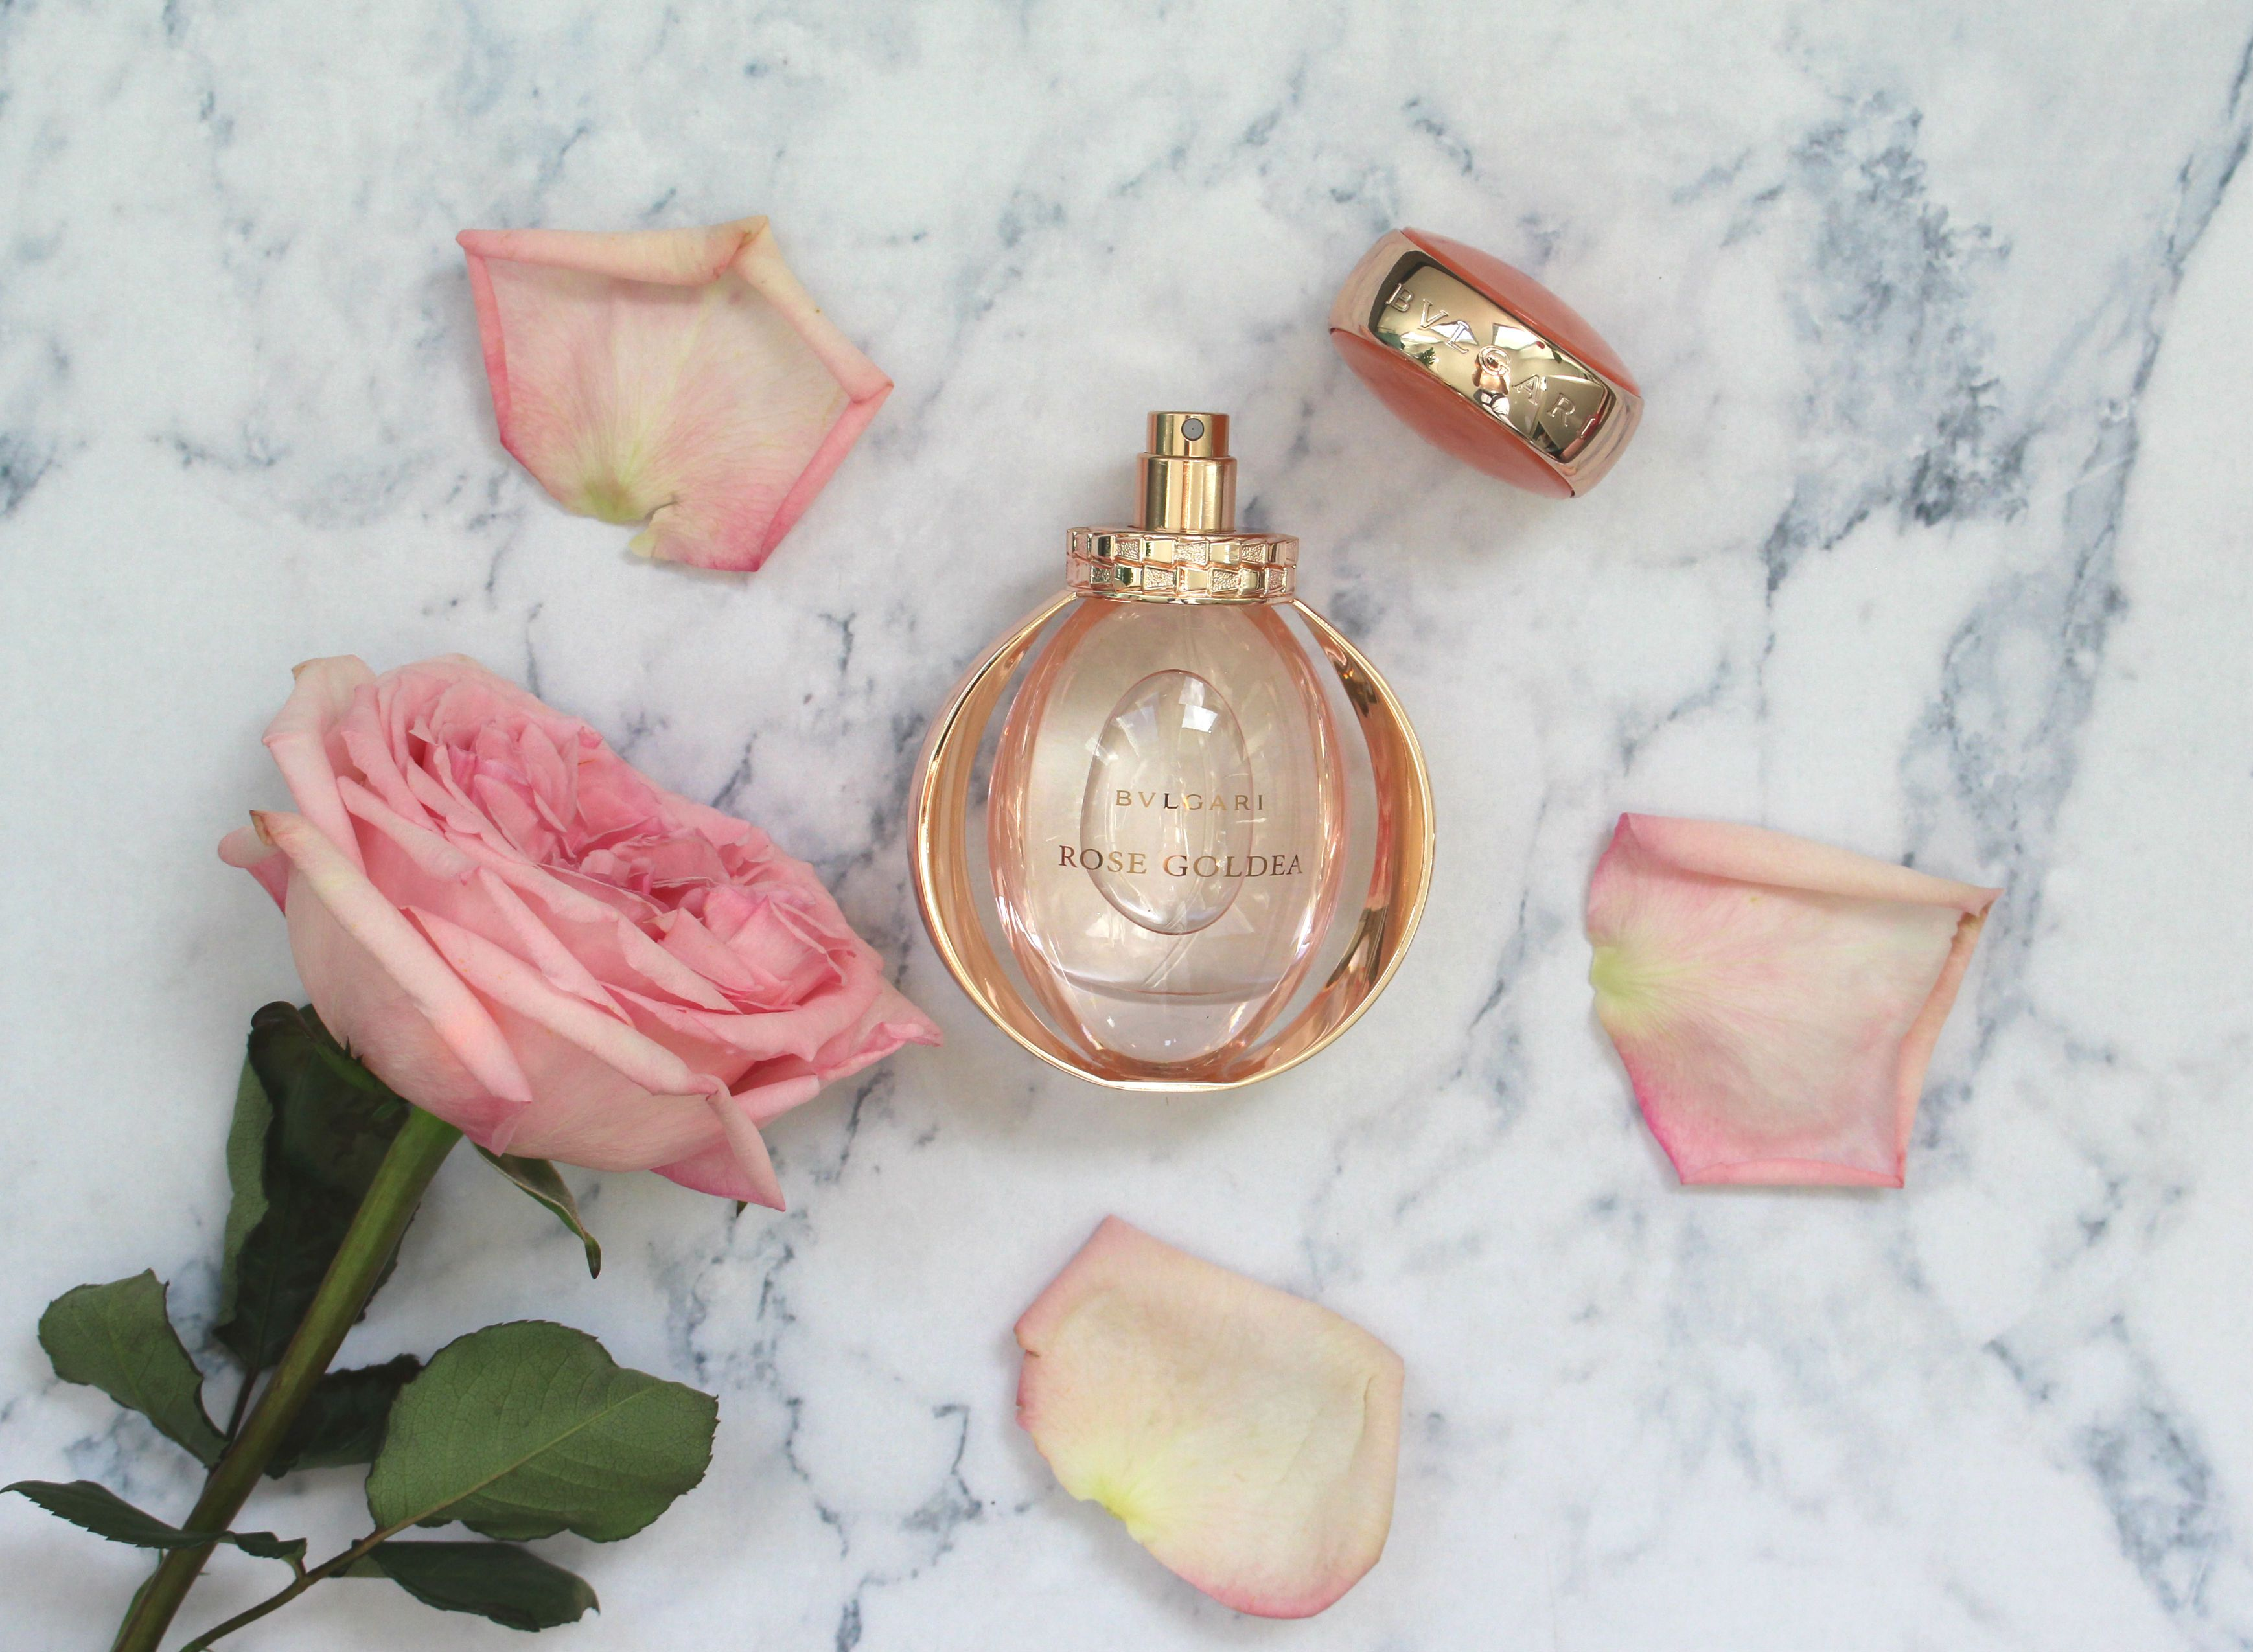 Rose goldea favorite fragrances pinterest perfume bvlgari and rose beauty das bvlgari rose goldea eau de parfum umhllt mit zartem duft aus rosen izmirmasajfo